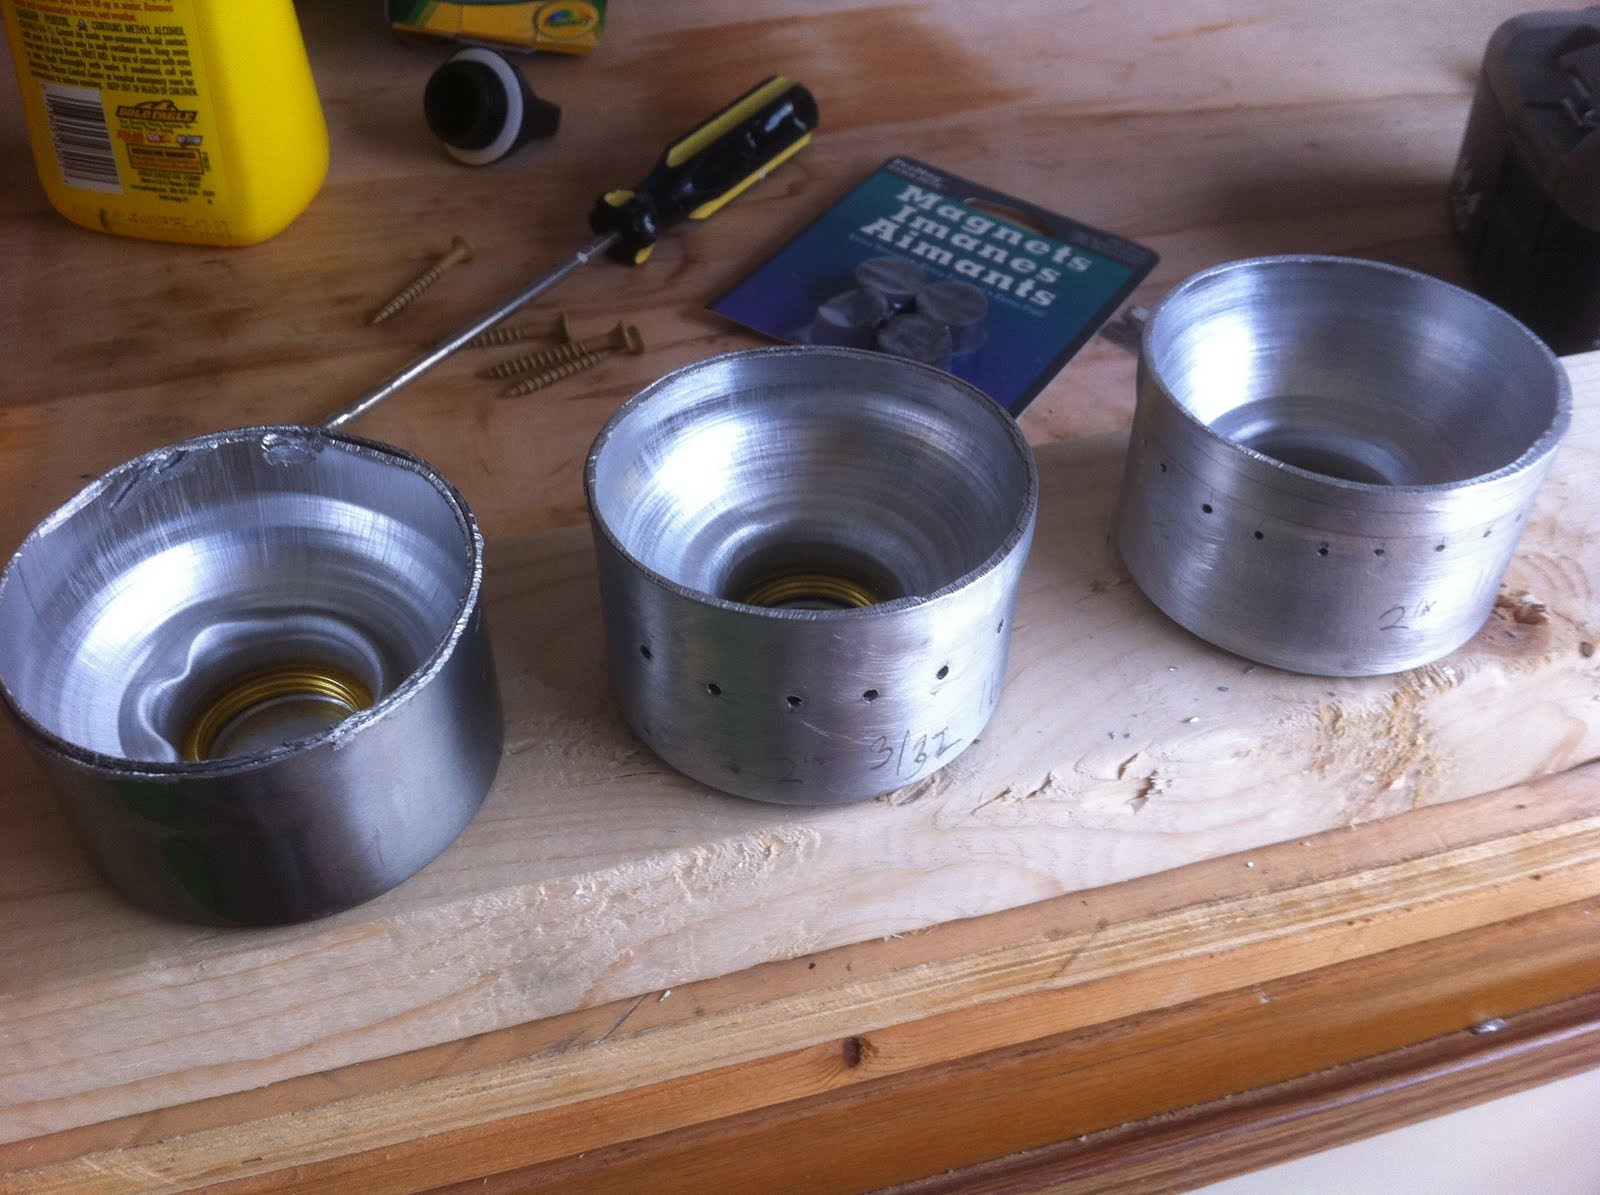 Best ideas about Alcohol Stove DIY . Save or Pin Running in Circles for Fun DIY Alcohol Backpacking Stove Now.